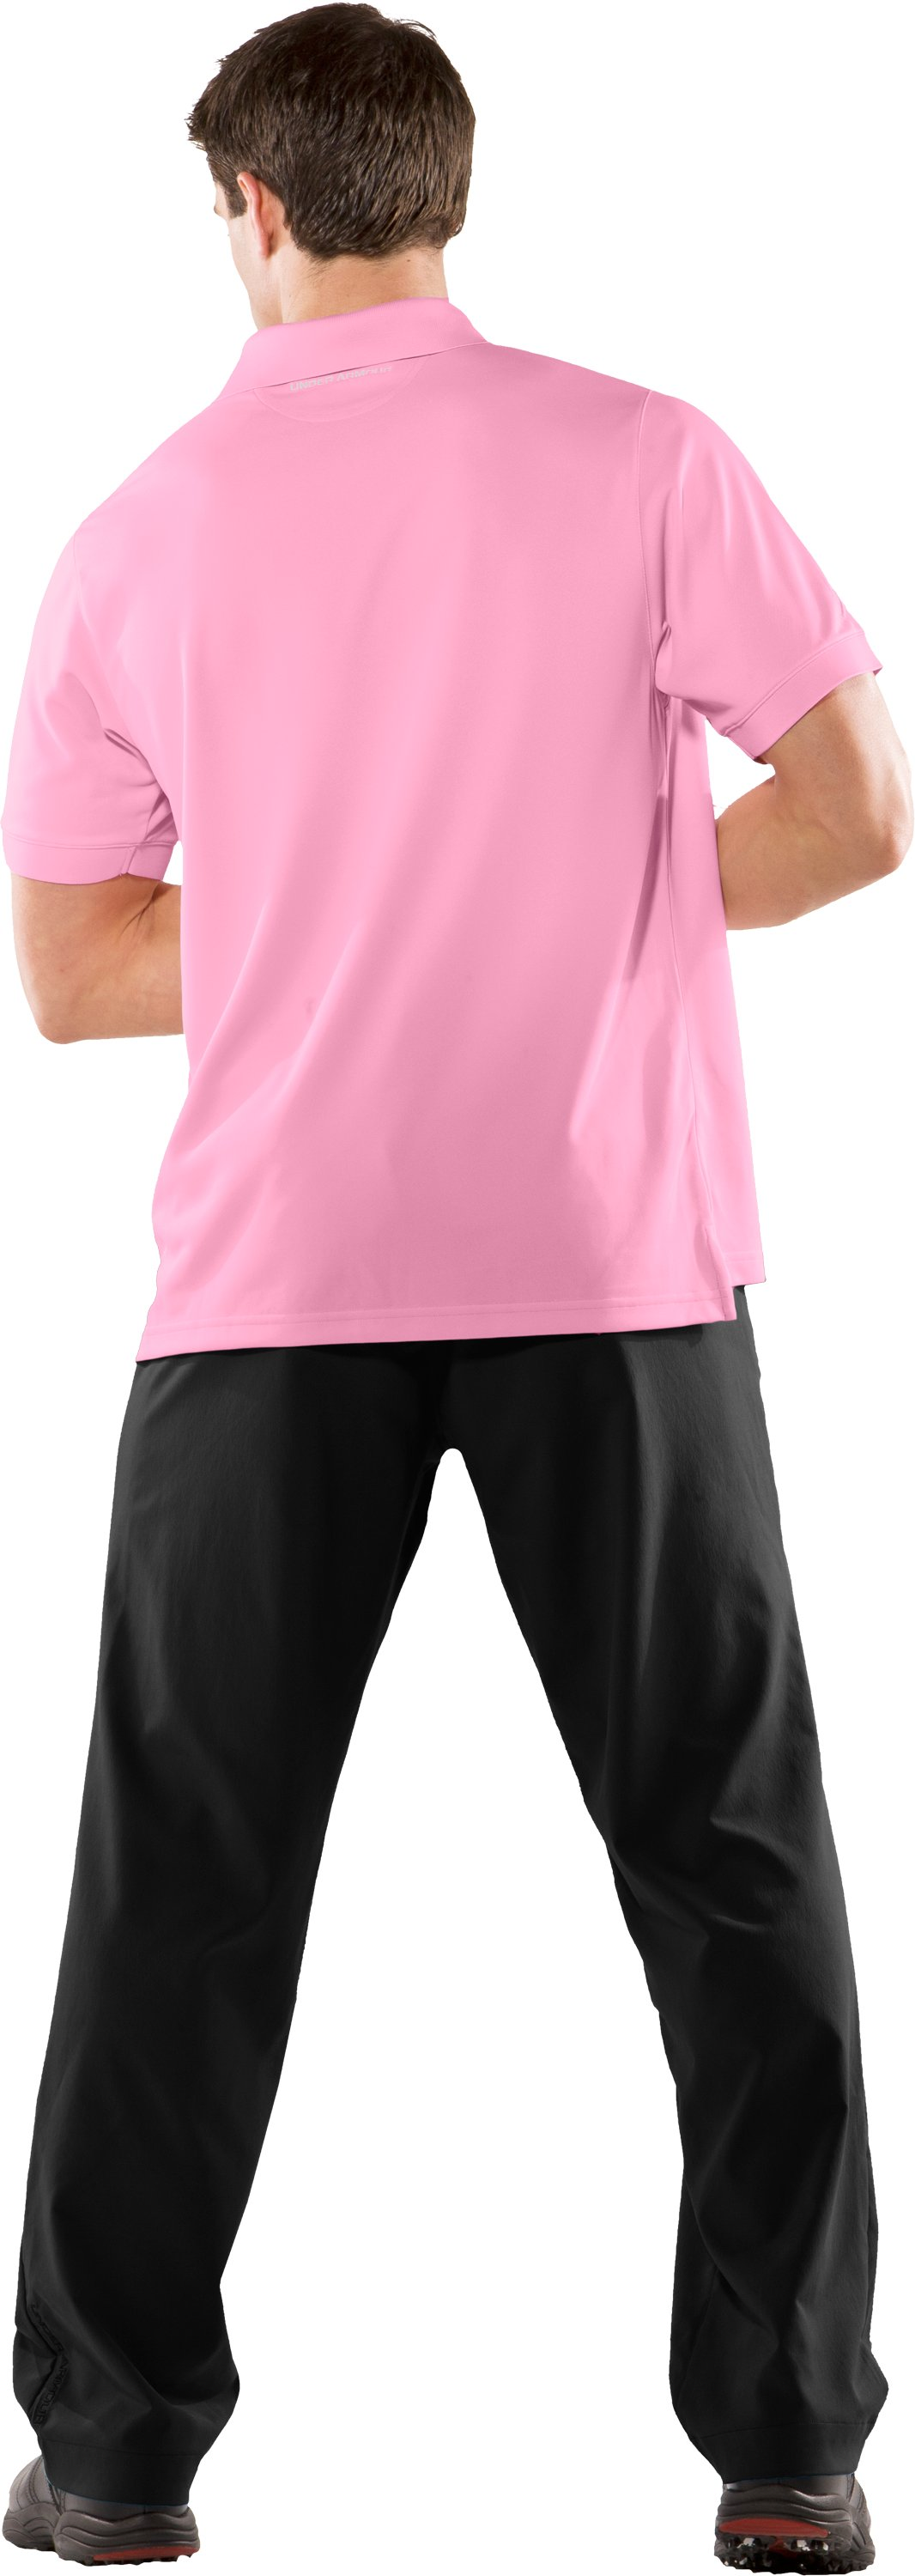 Power In Pink® UA Exploded Logo Polo Shirt, True Pink, Back